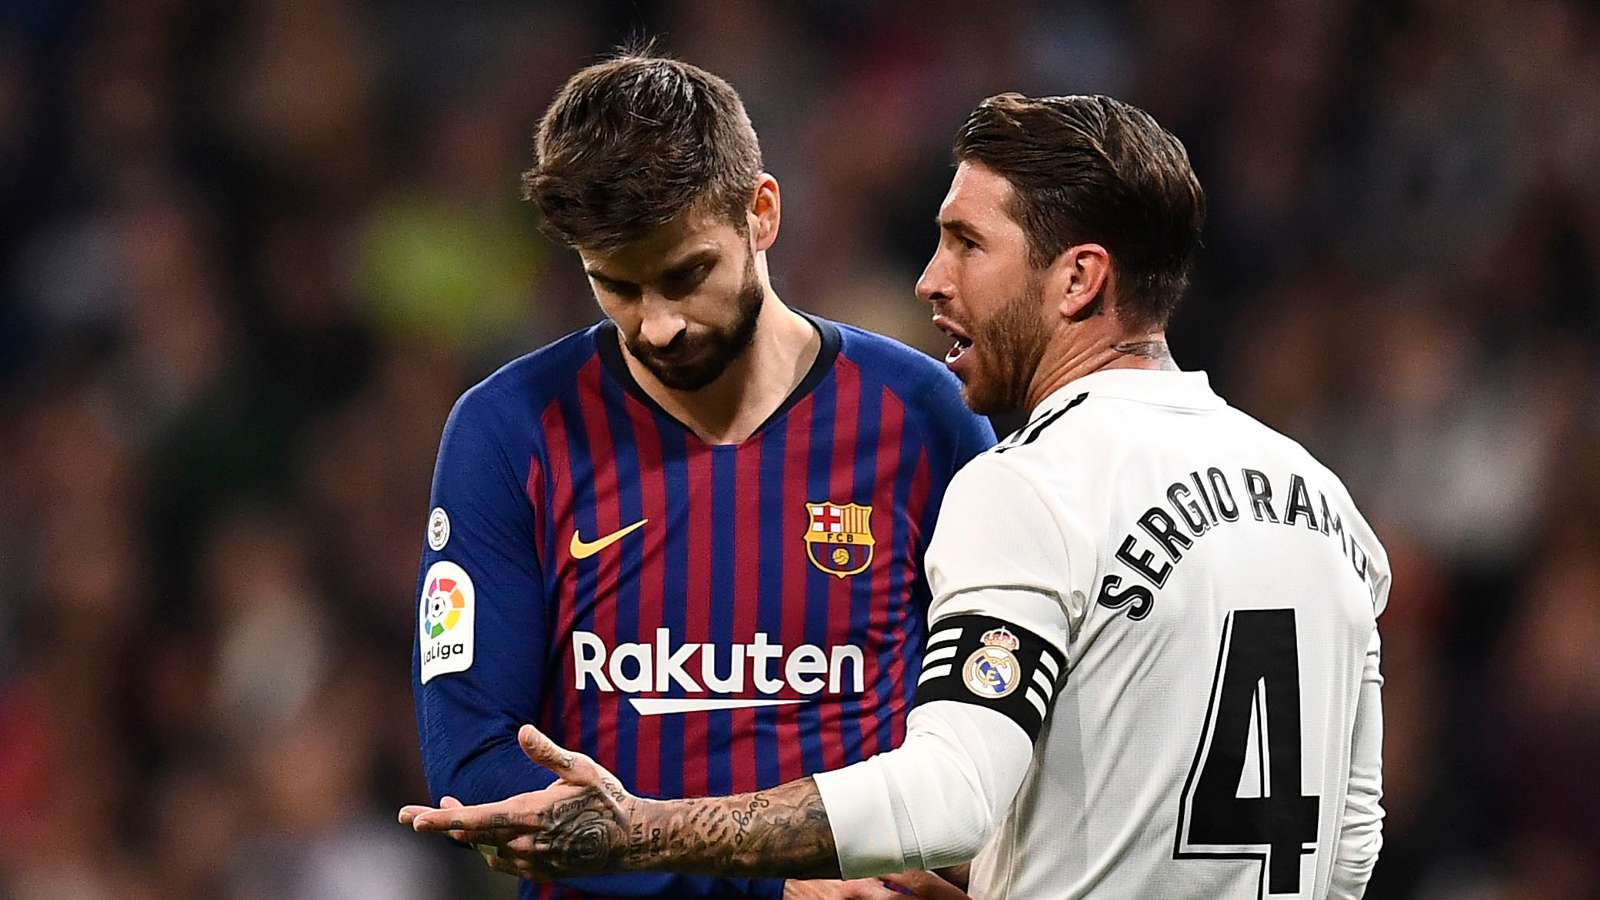 piqueramos-barcelona-v-real-madrid-2018-19